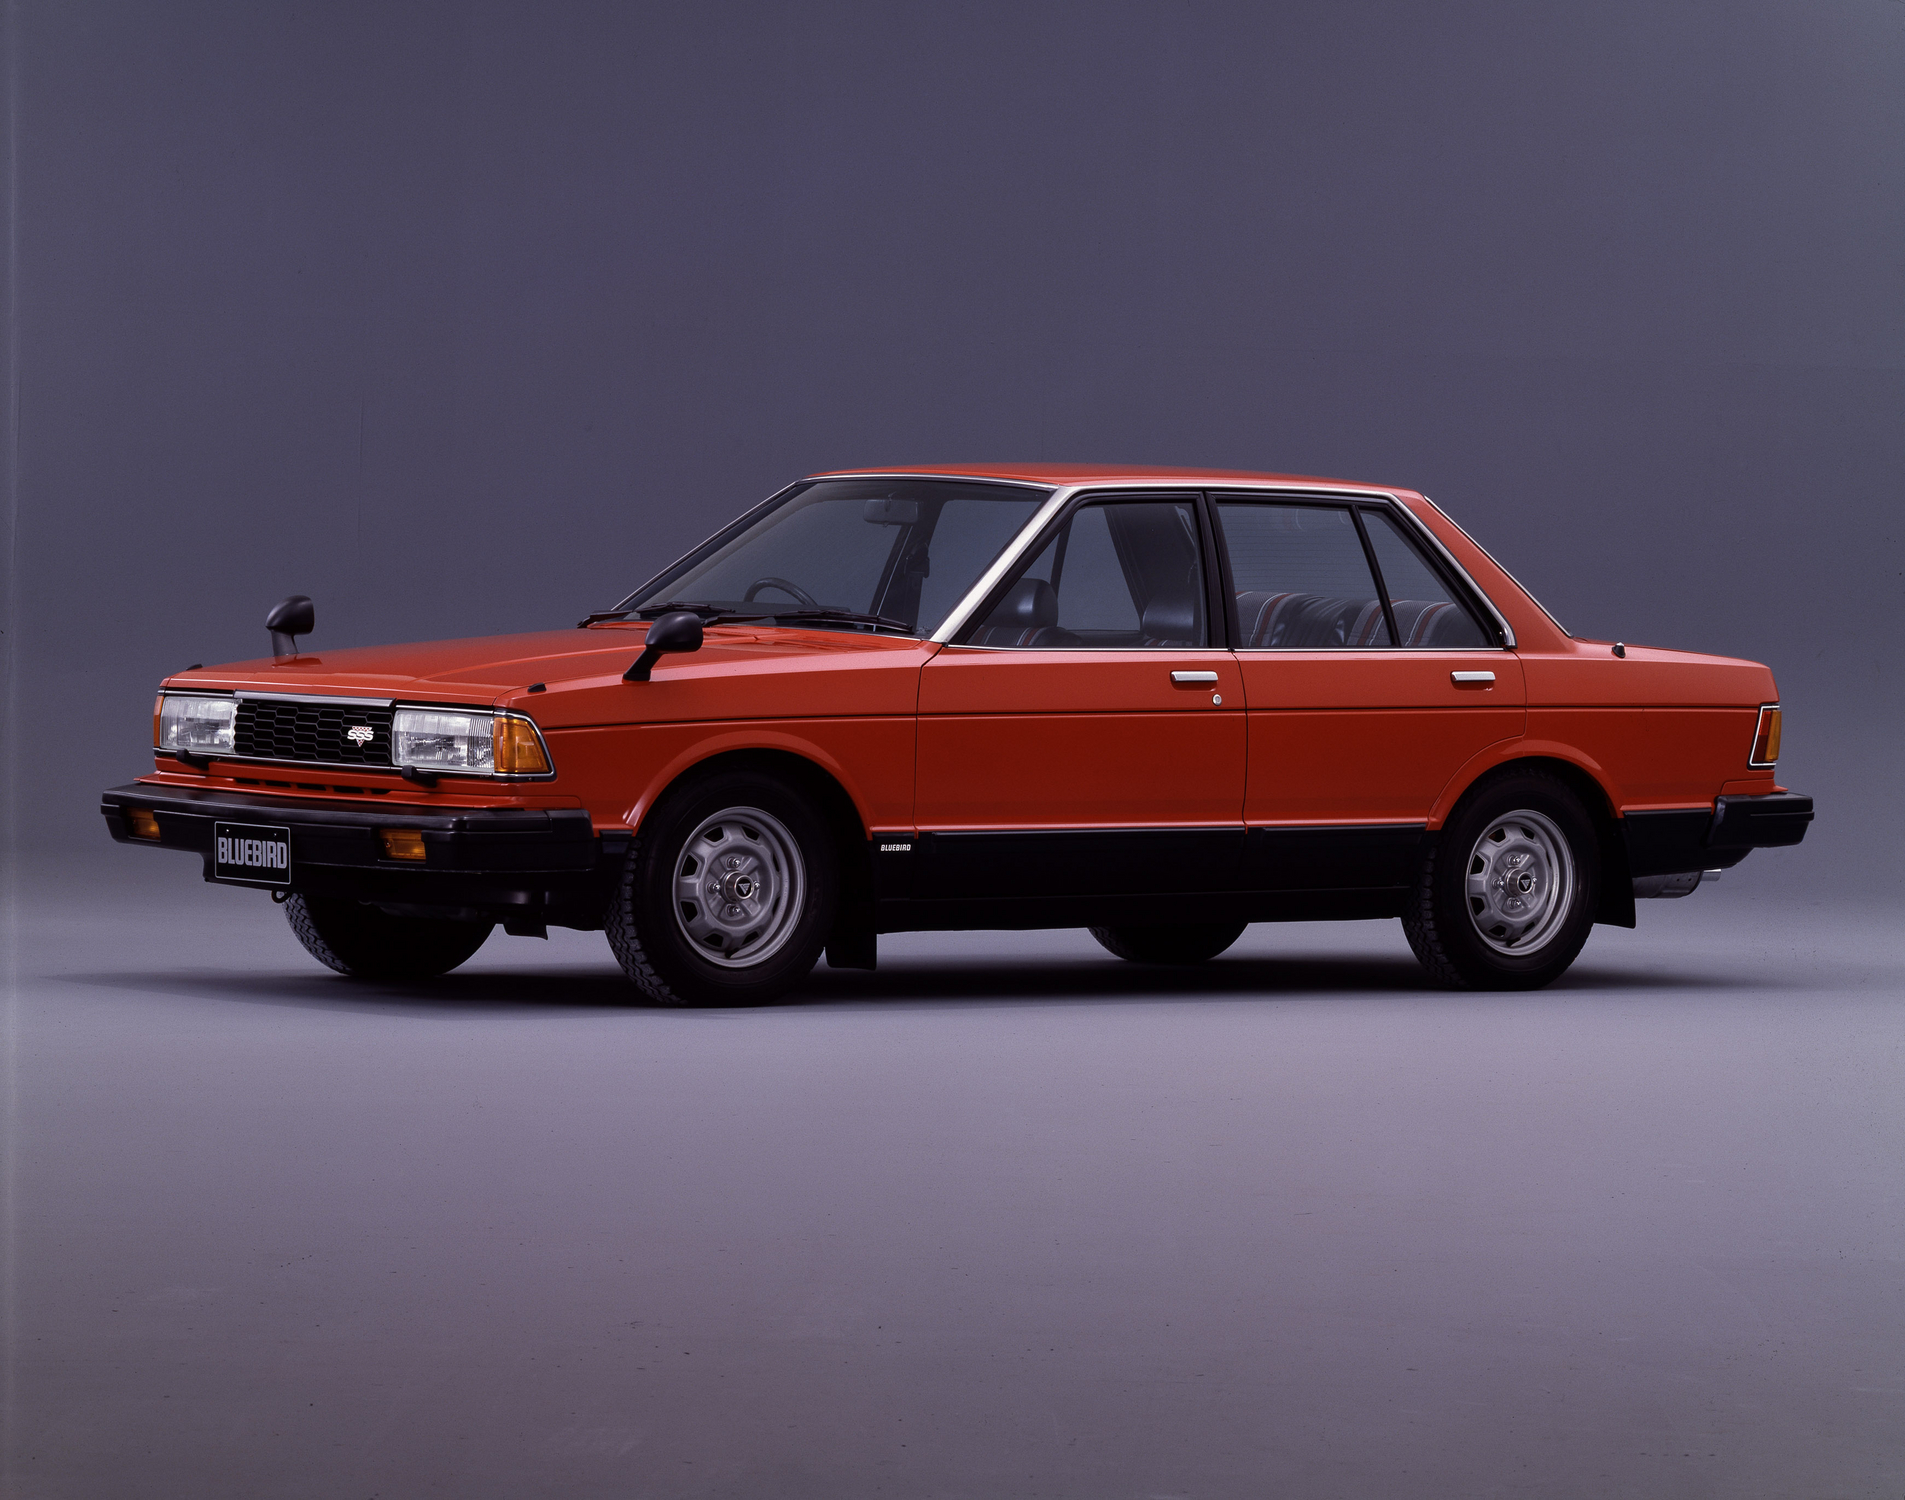 Nissan Bluebird Sedan Turbo SSS-S